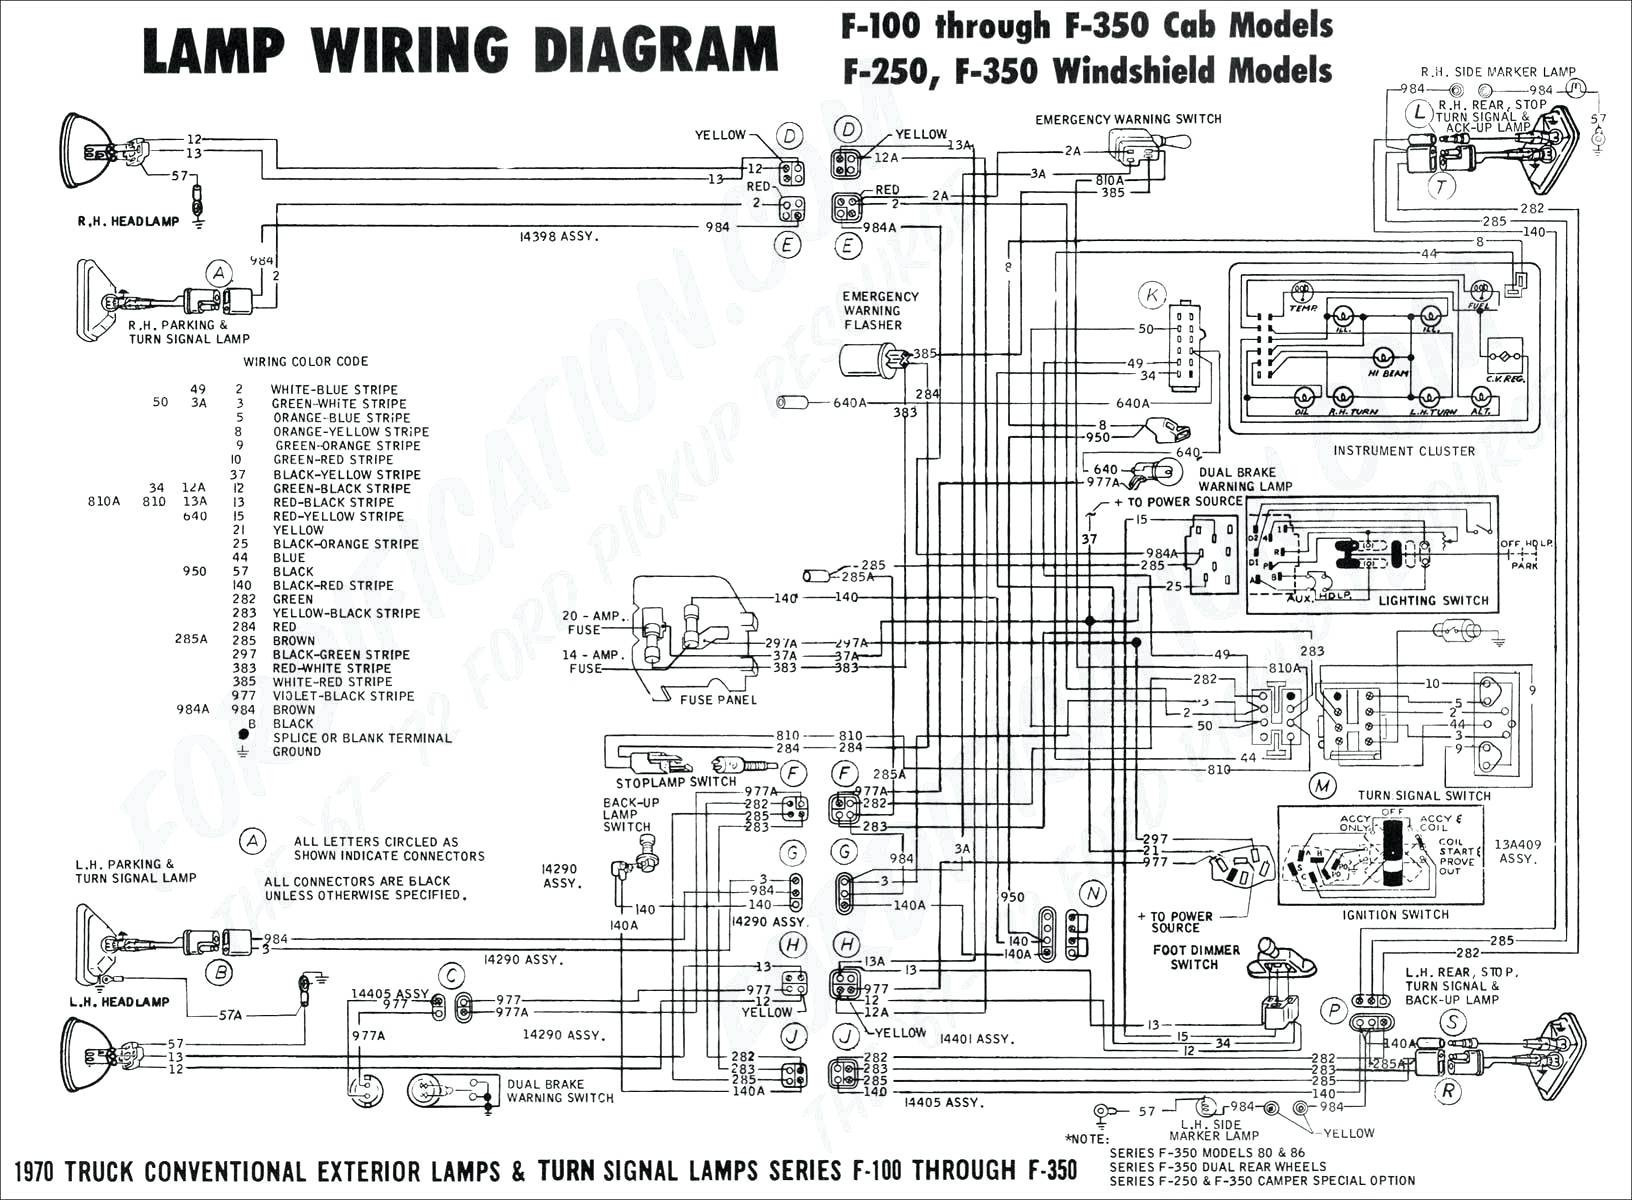 2005 Frontier Wiring Diagram | Best Wiring Library - 2005 Nissan Frontier Trailer Wiring Diagram